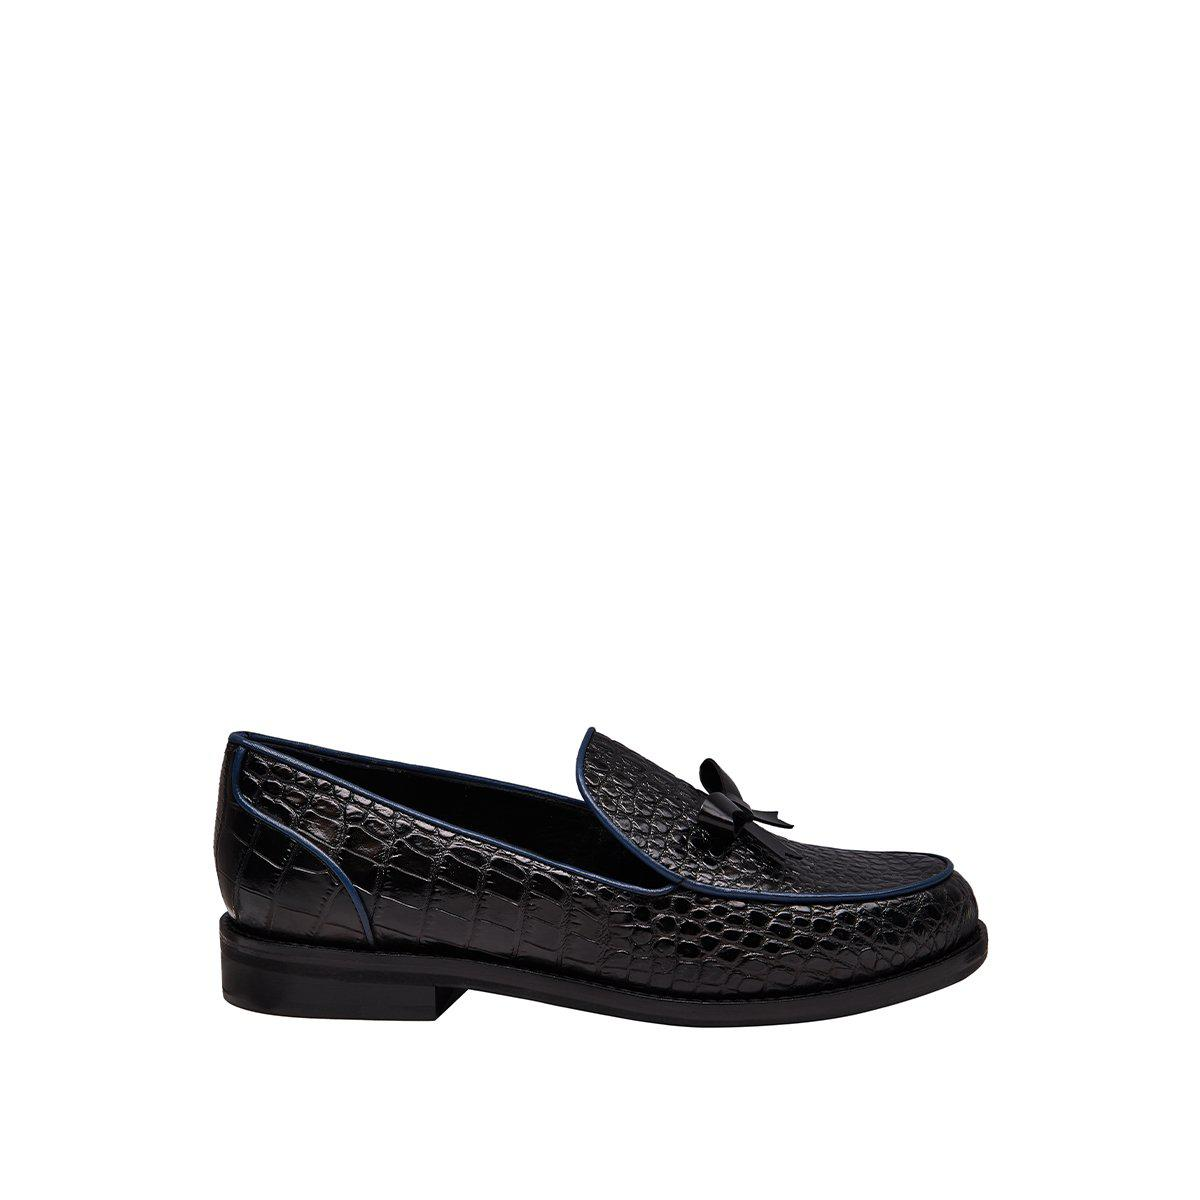 Keaton Loafer - Black/Blue Piping